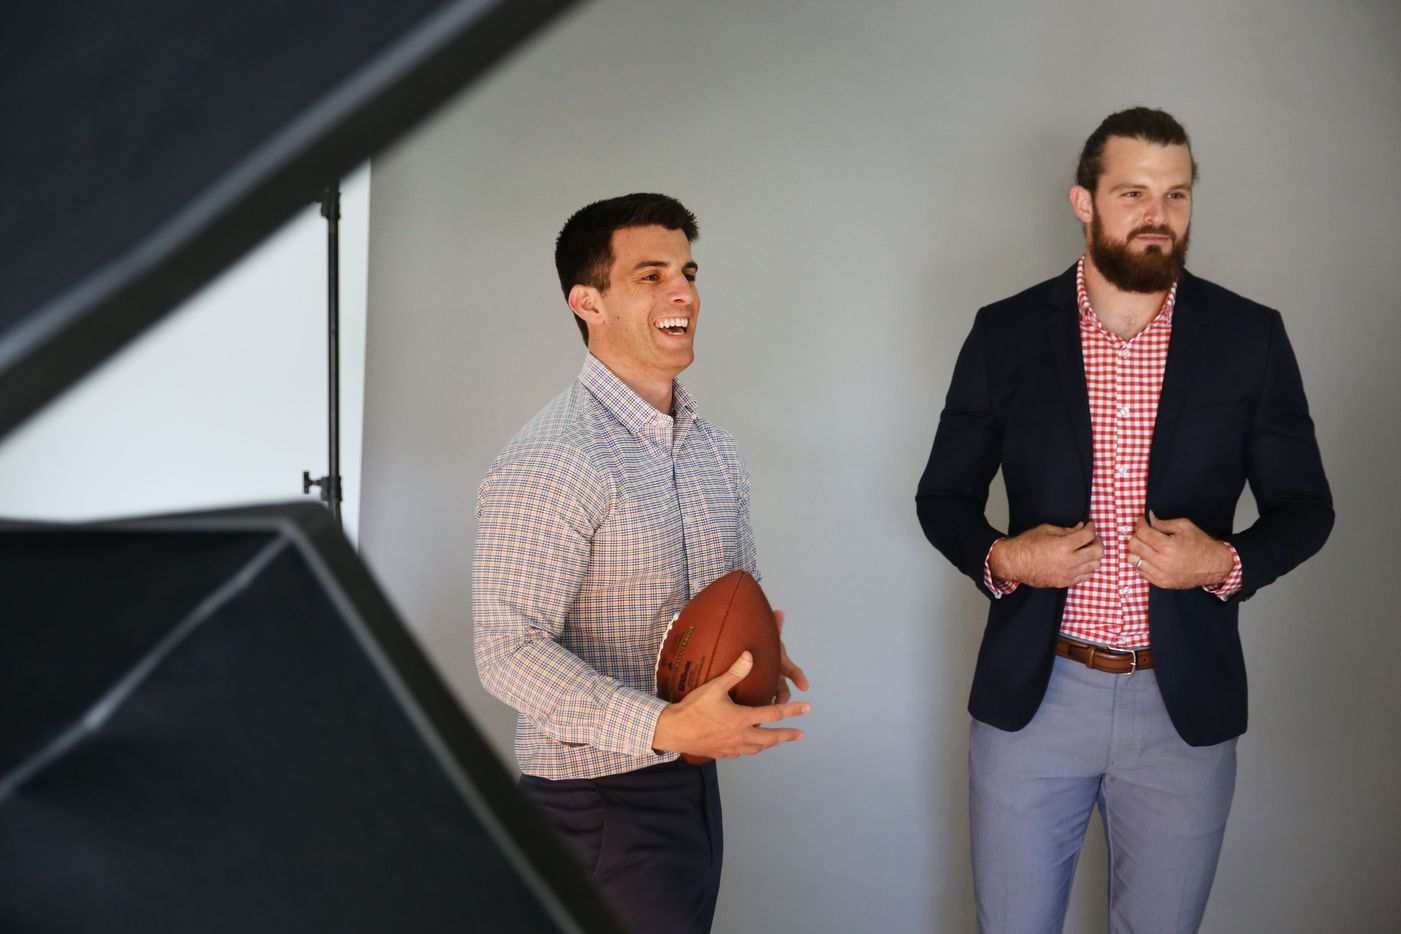 Kevin Lavelle (left), founder and CEO of Mizzen+Main, works with New Orleans Saints punter Thomas Morstead during a  photography session in Dallas. The menswear brand counts Morstead and many other professional athletes among its customers.